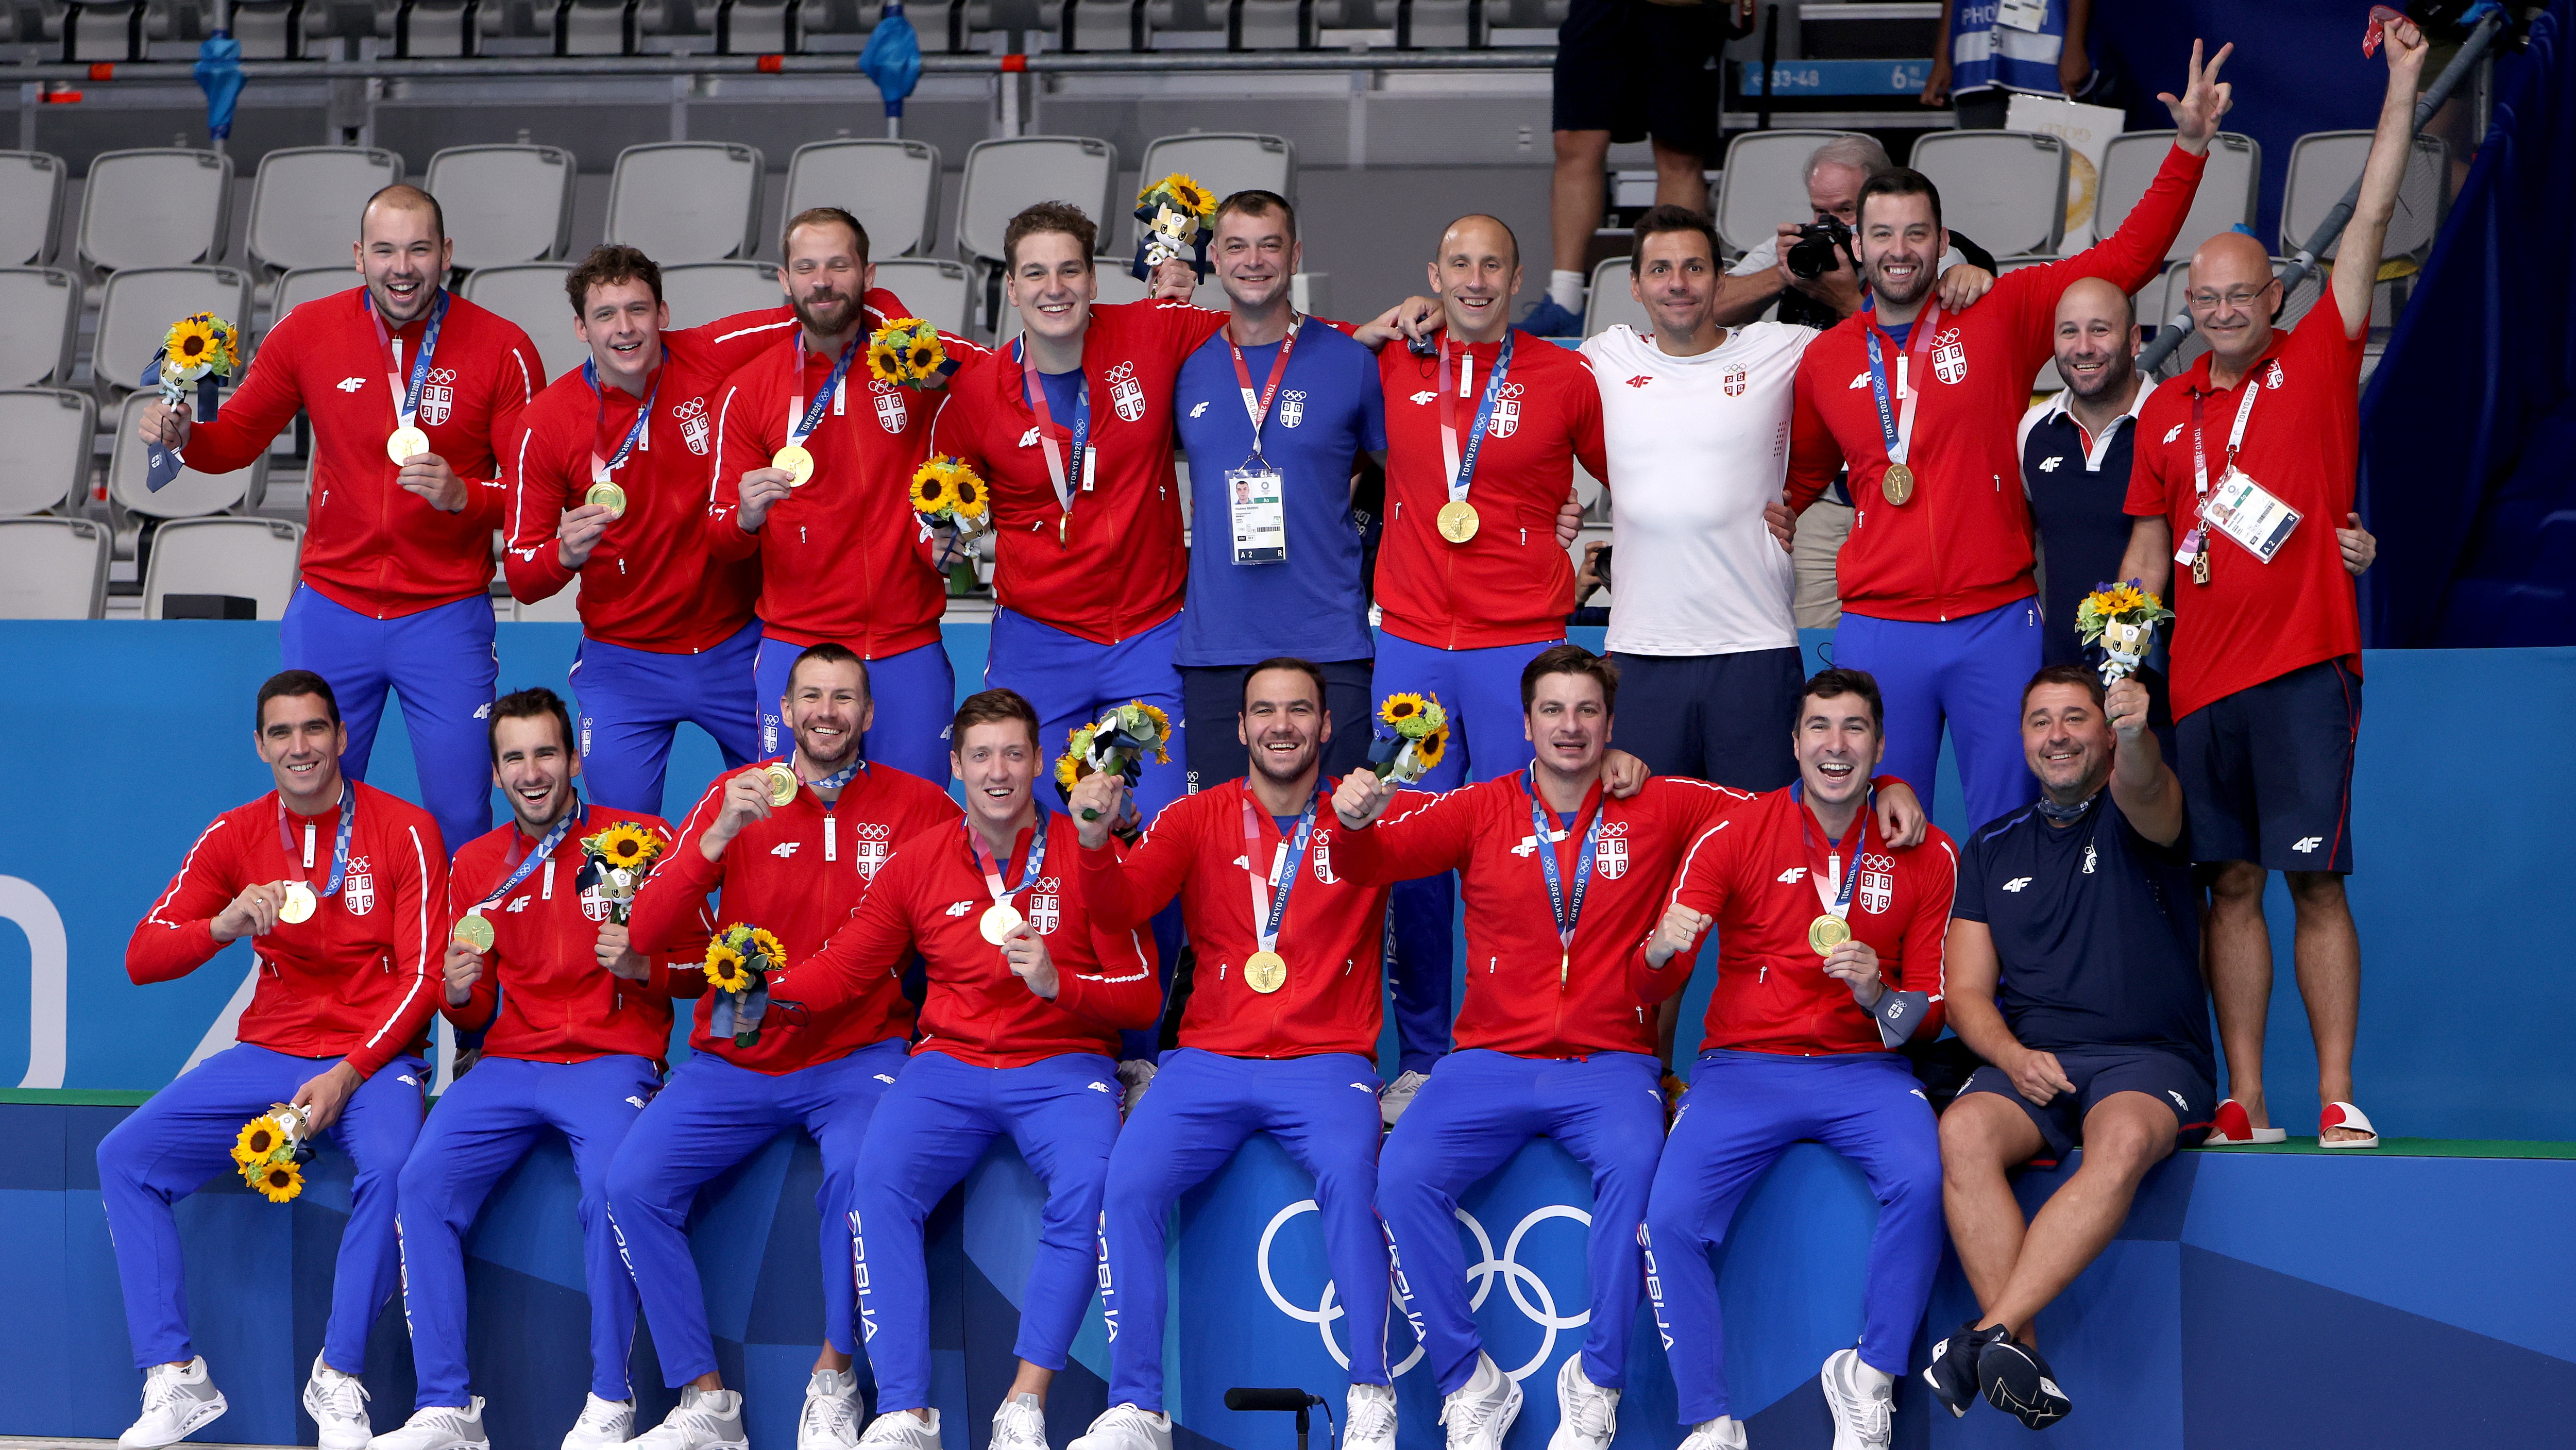 Image for Serbia takes home final gold medal of the Tokyo Olympics